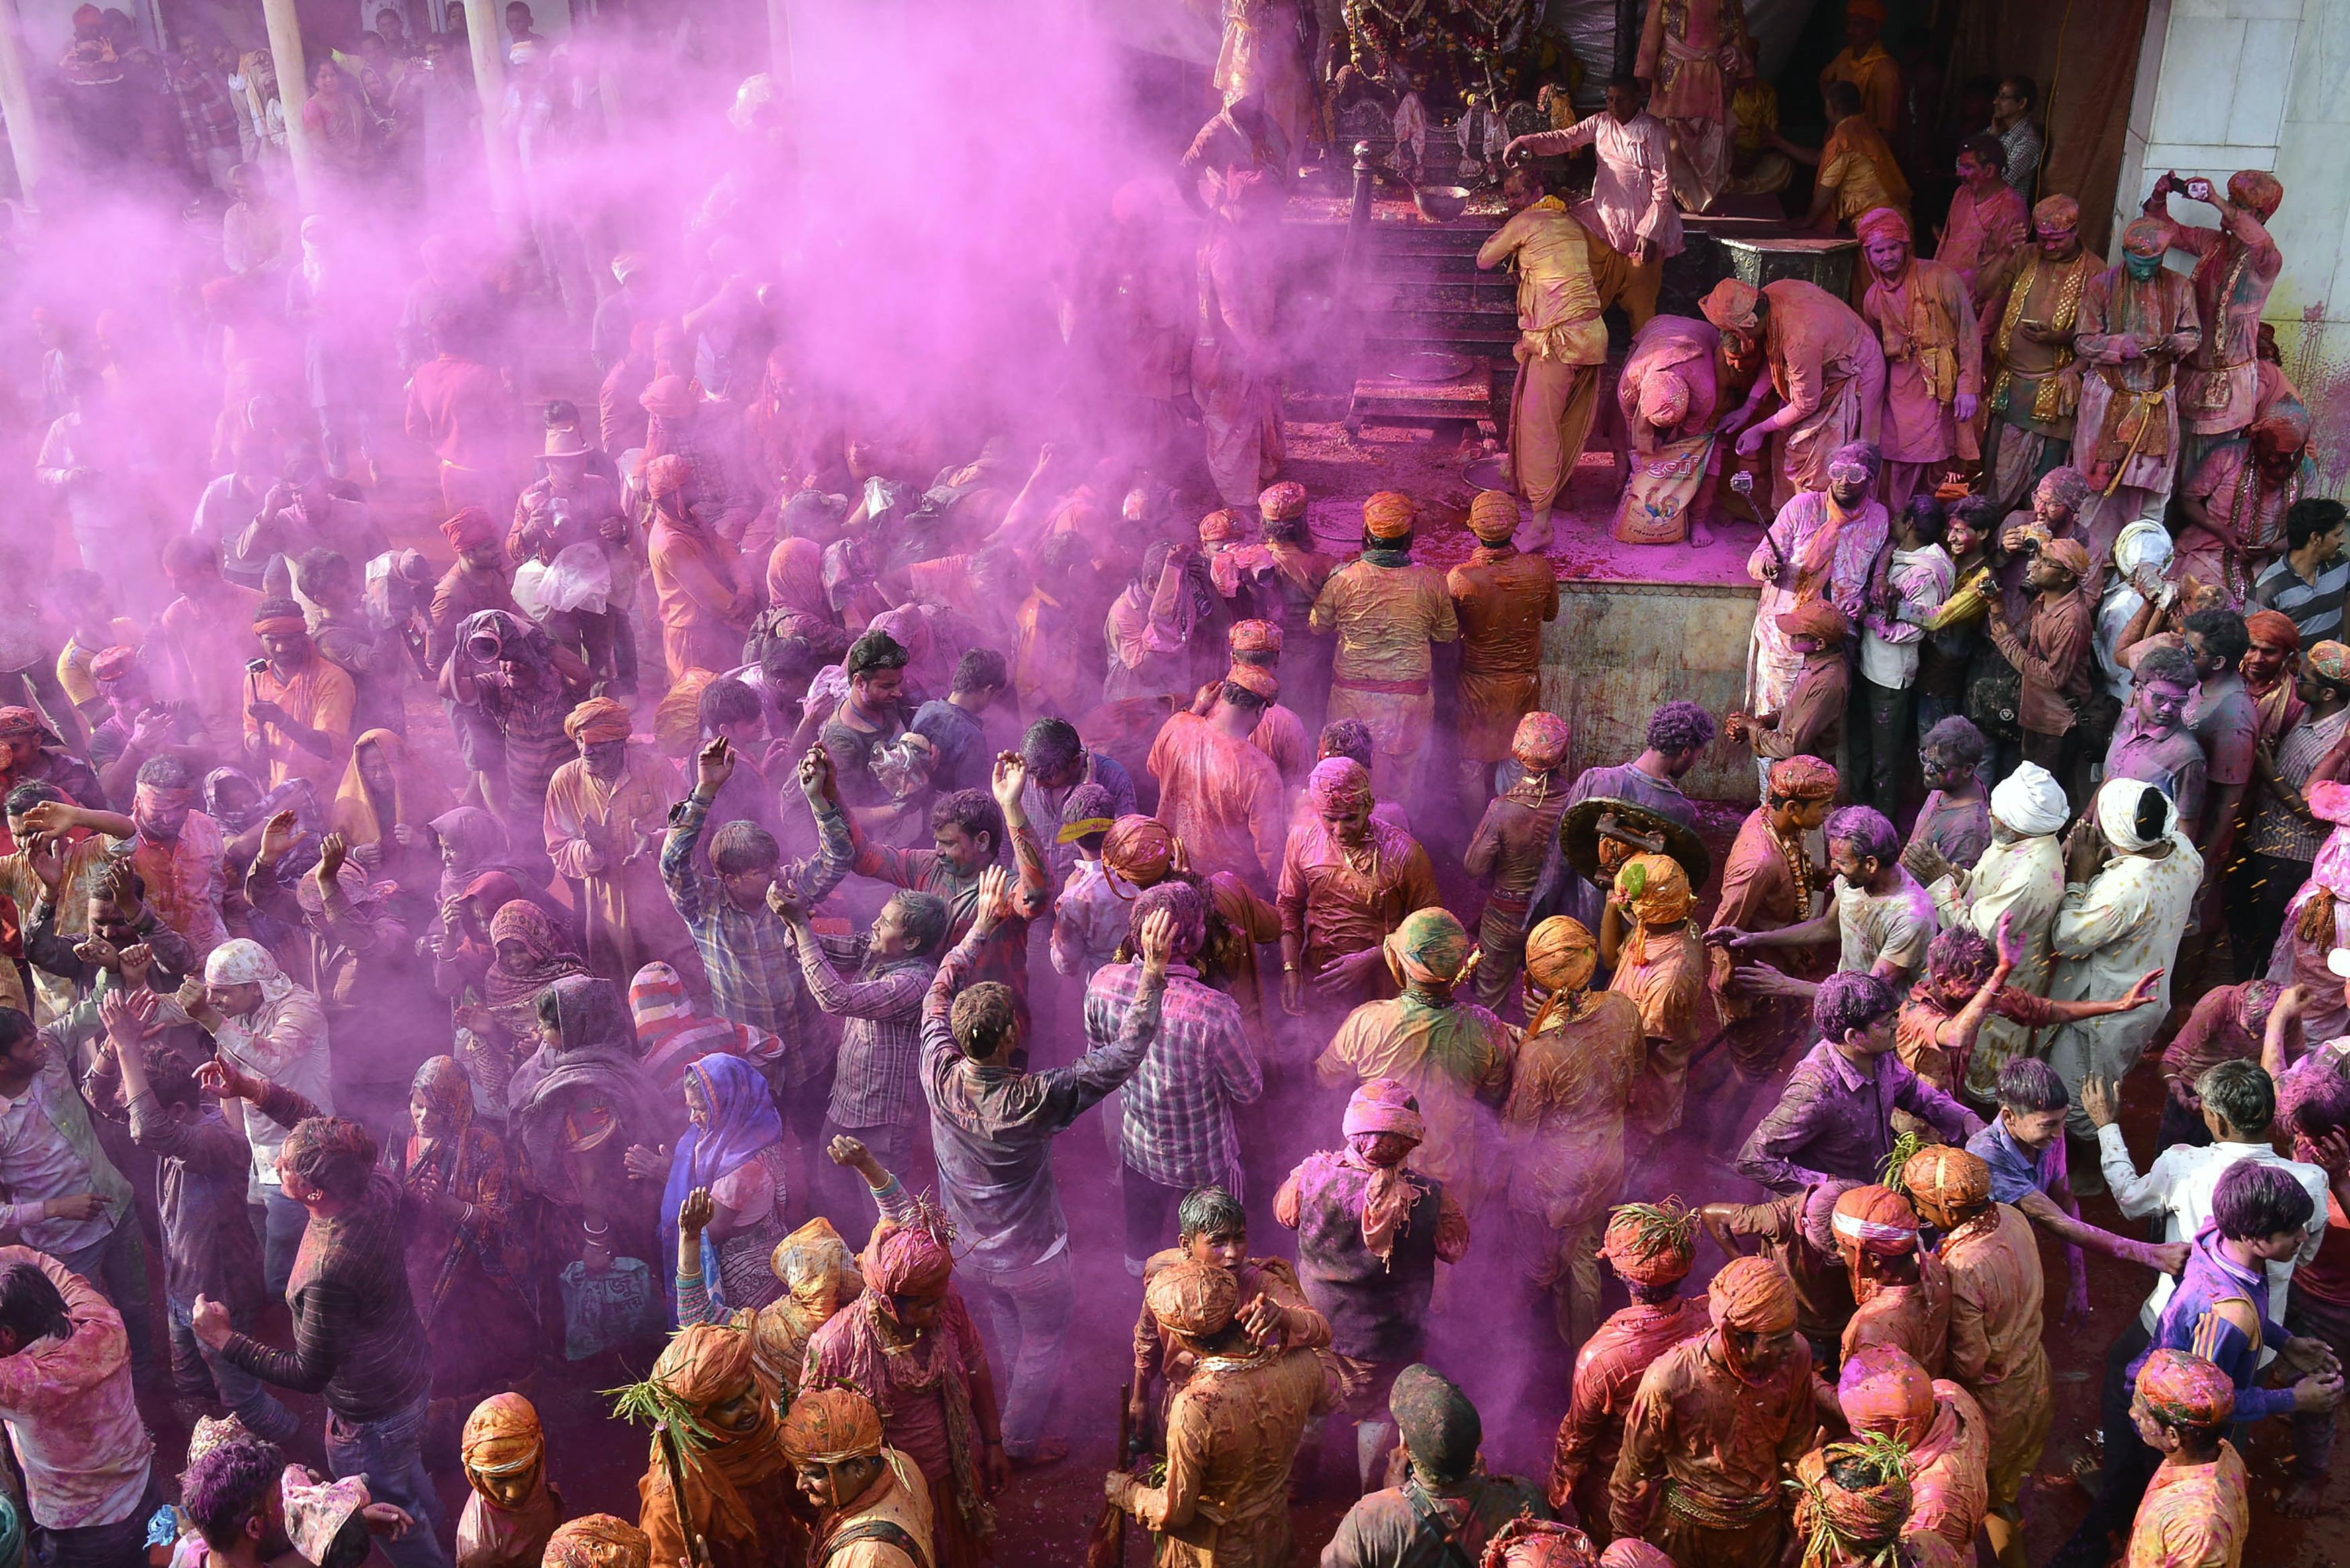 Indian Hindu devotees celebrate Holi the spring festival of colours during a traditional gathering